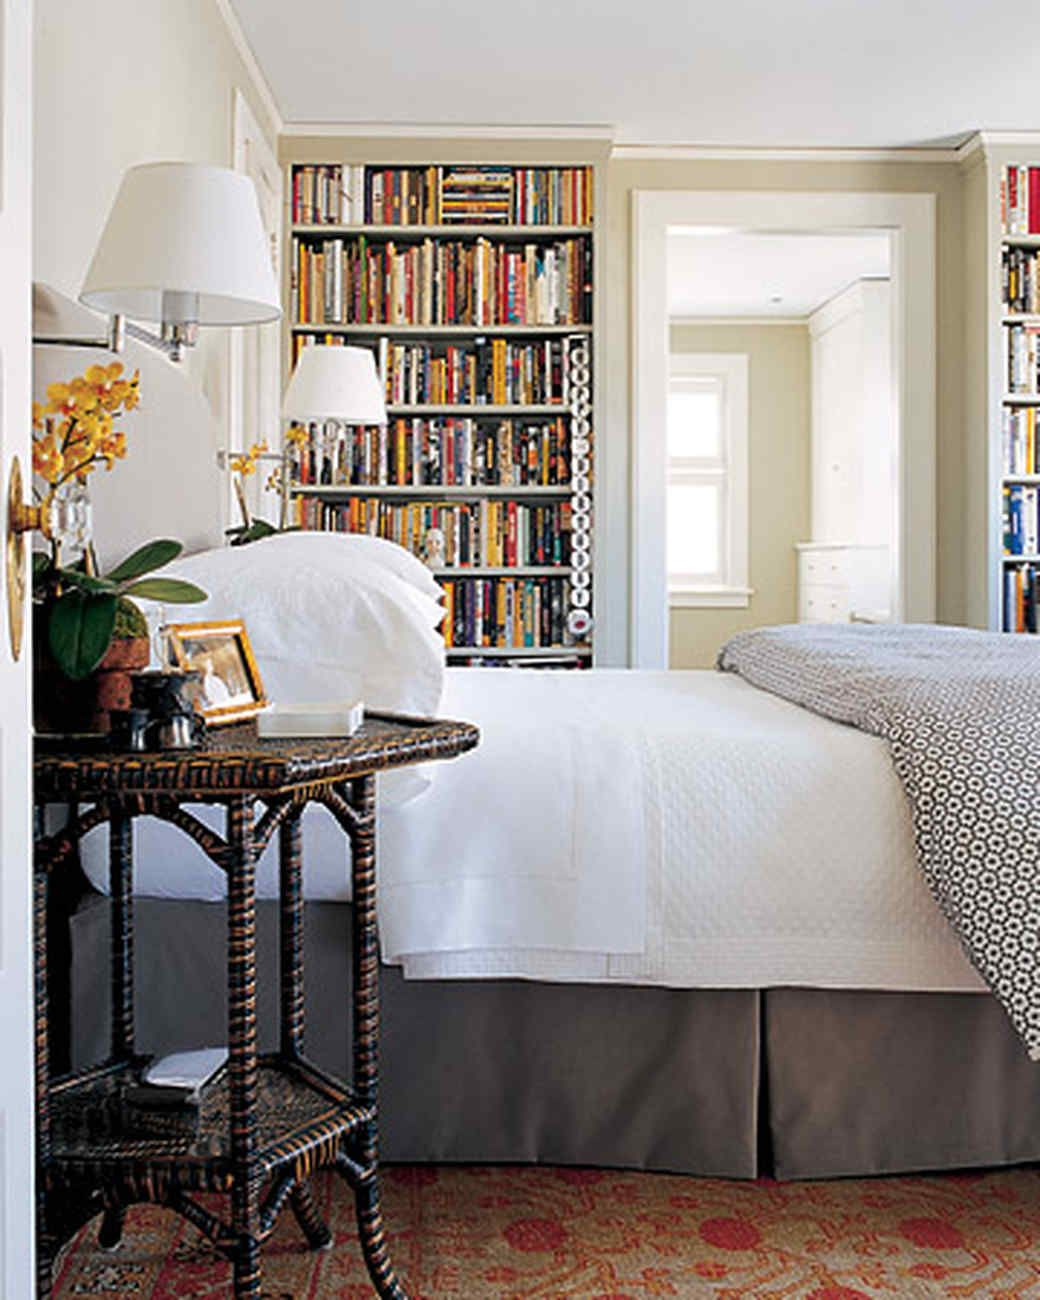 These Home Design Ideas For Bedrooms   Mondean